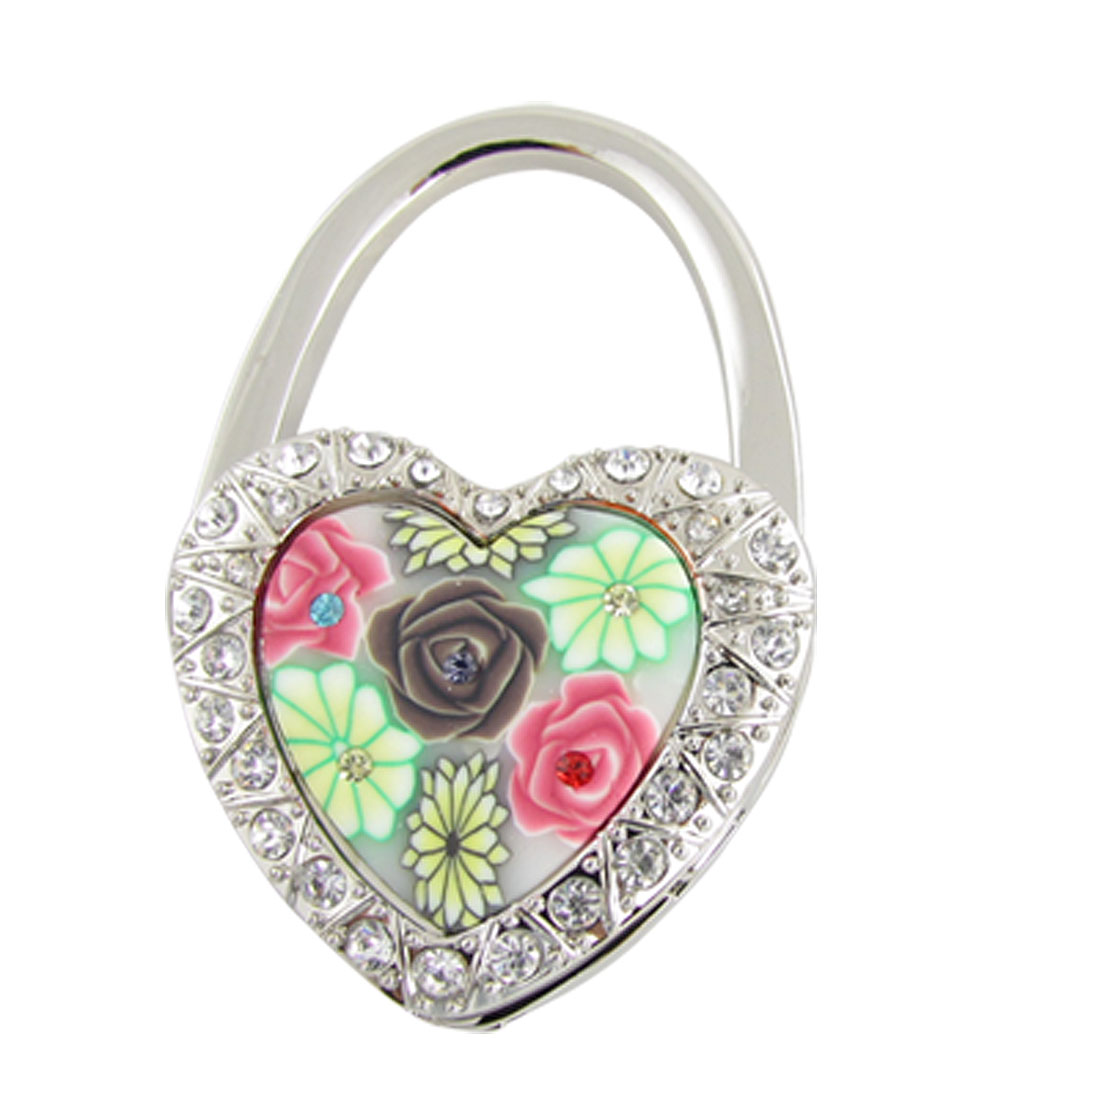 Portable Rhinestone Inlaid Heart Lock Style Handbag Folding Hook